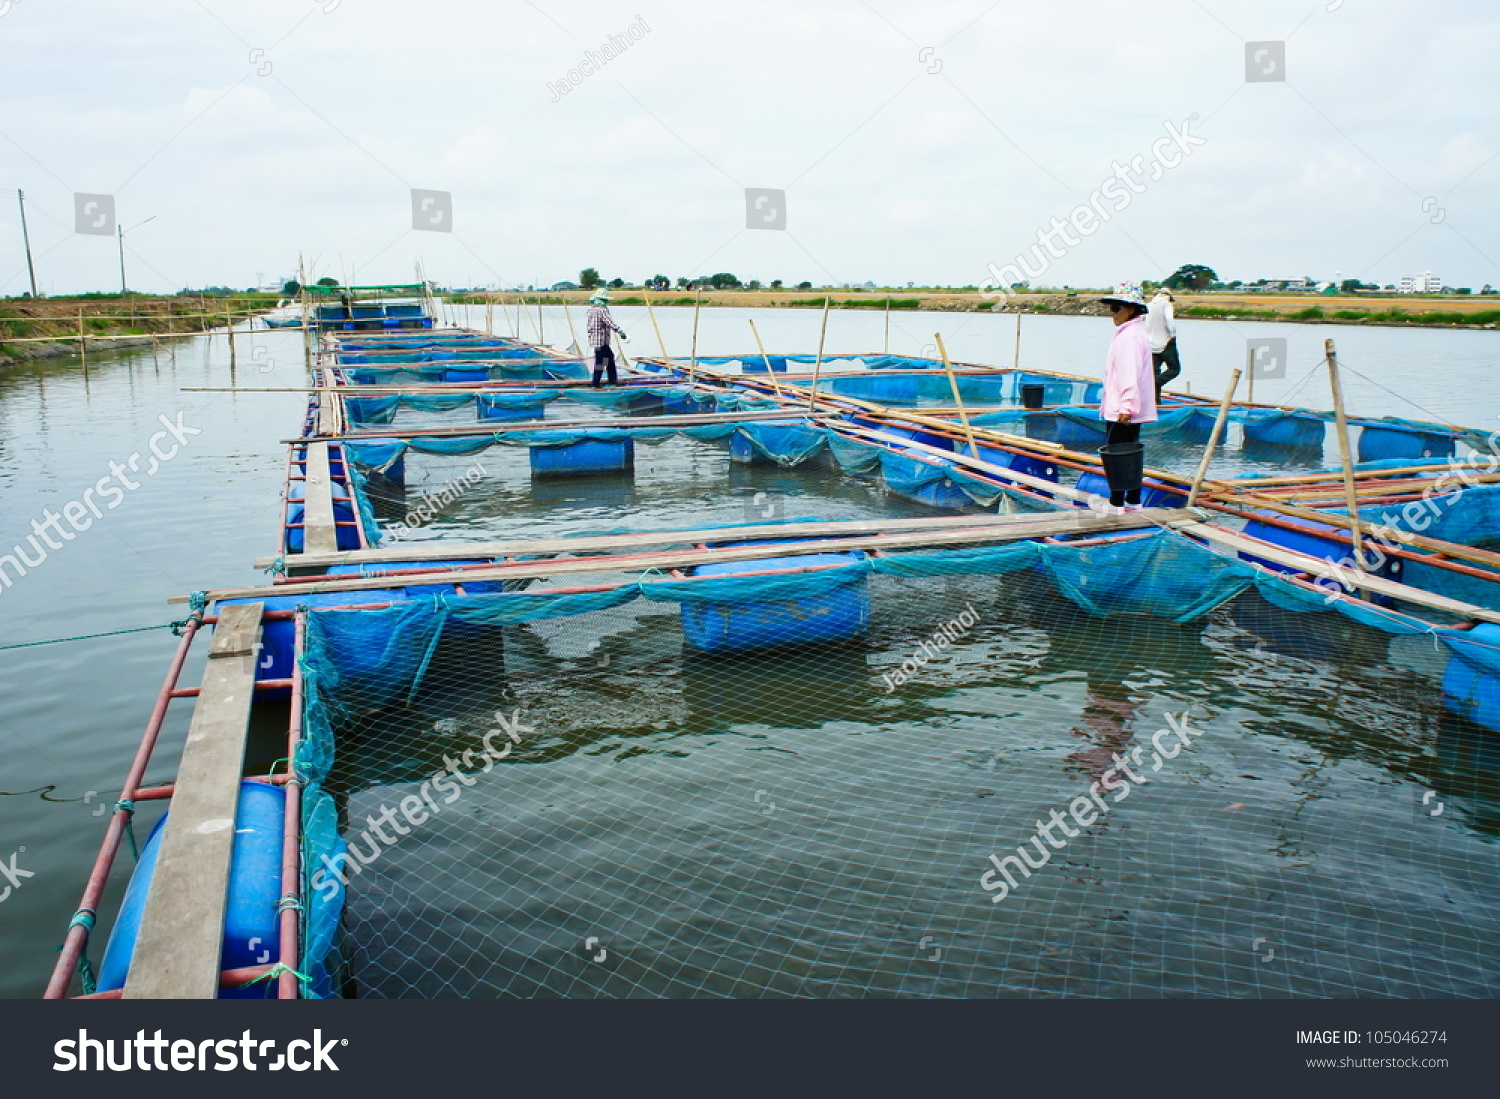 Fish farm located thailand country stock photo 105046274 for Fish farms in texas